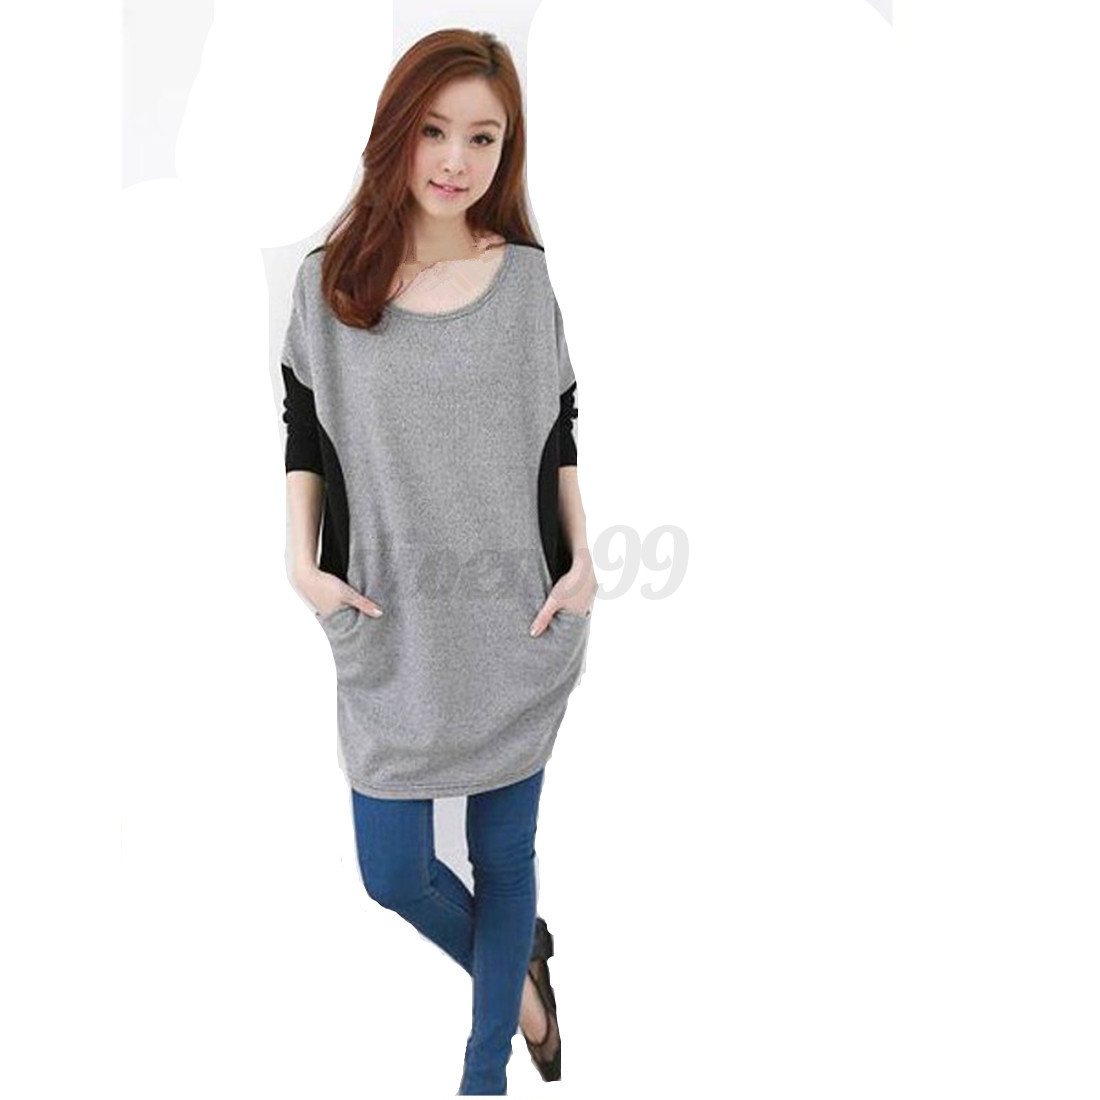 Women Girl Casual Plain Cotton Long Sleeve Blouse Tops T ...